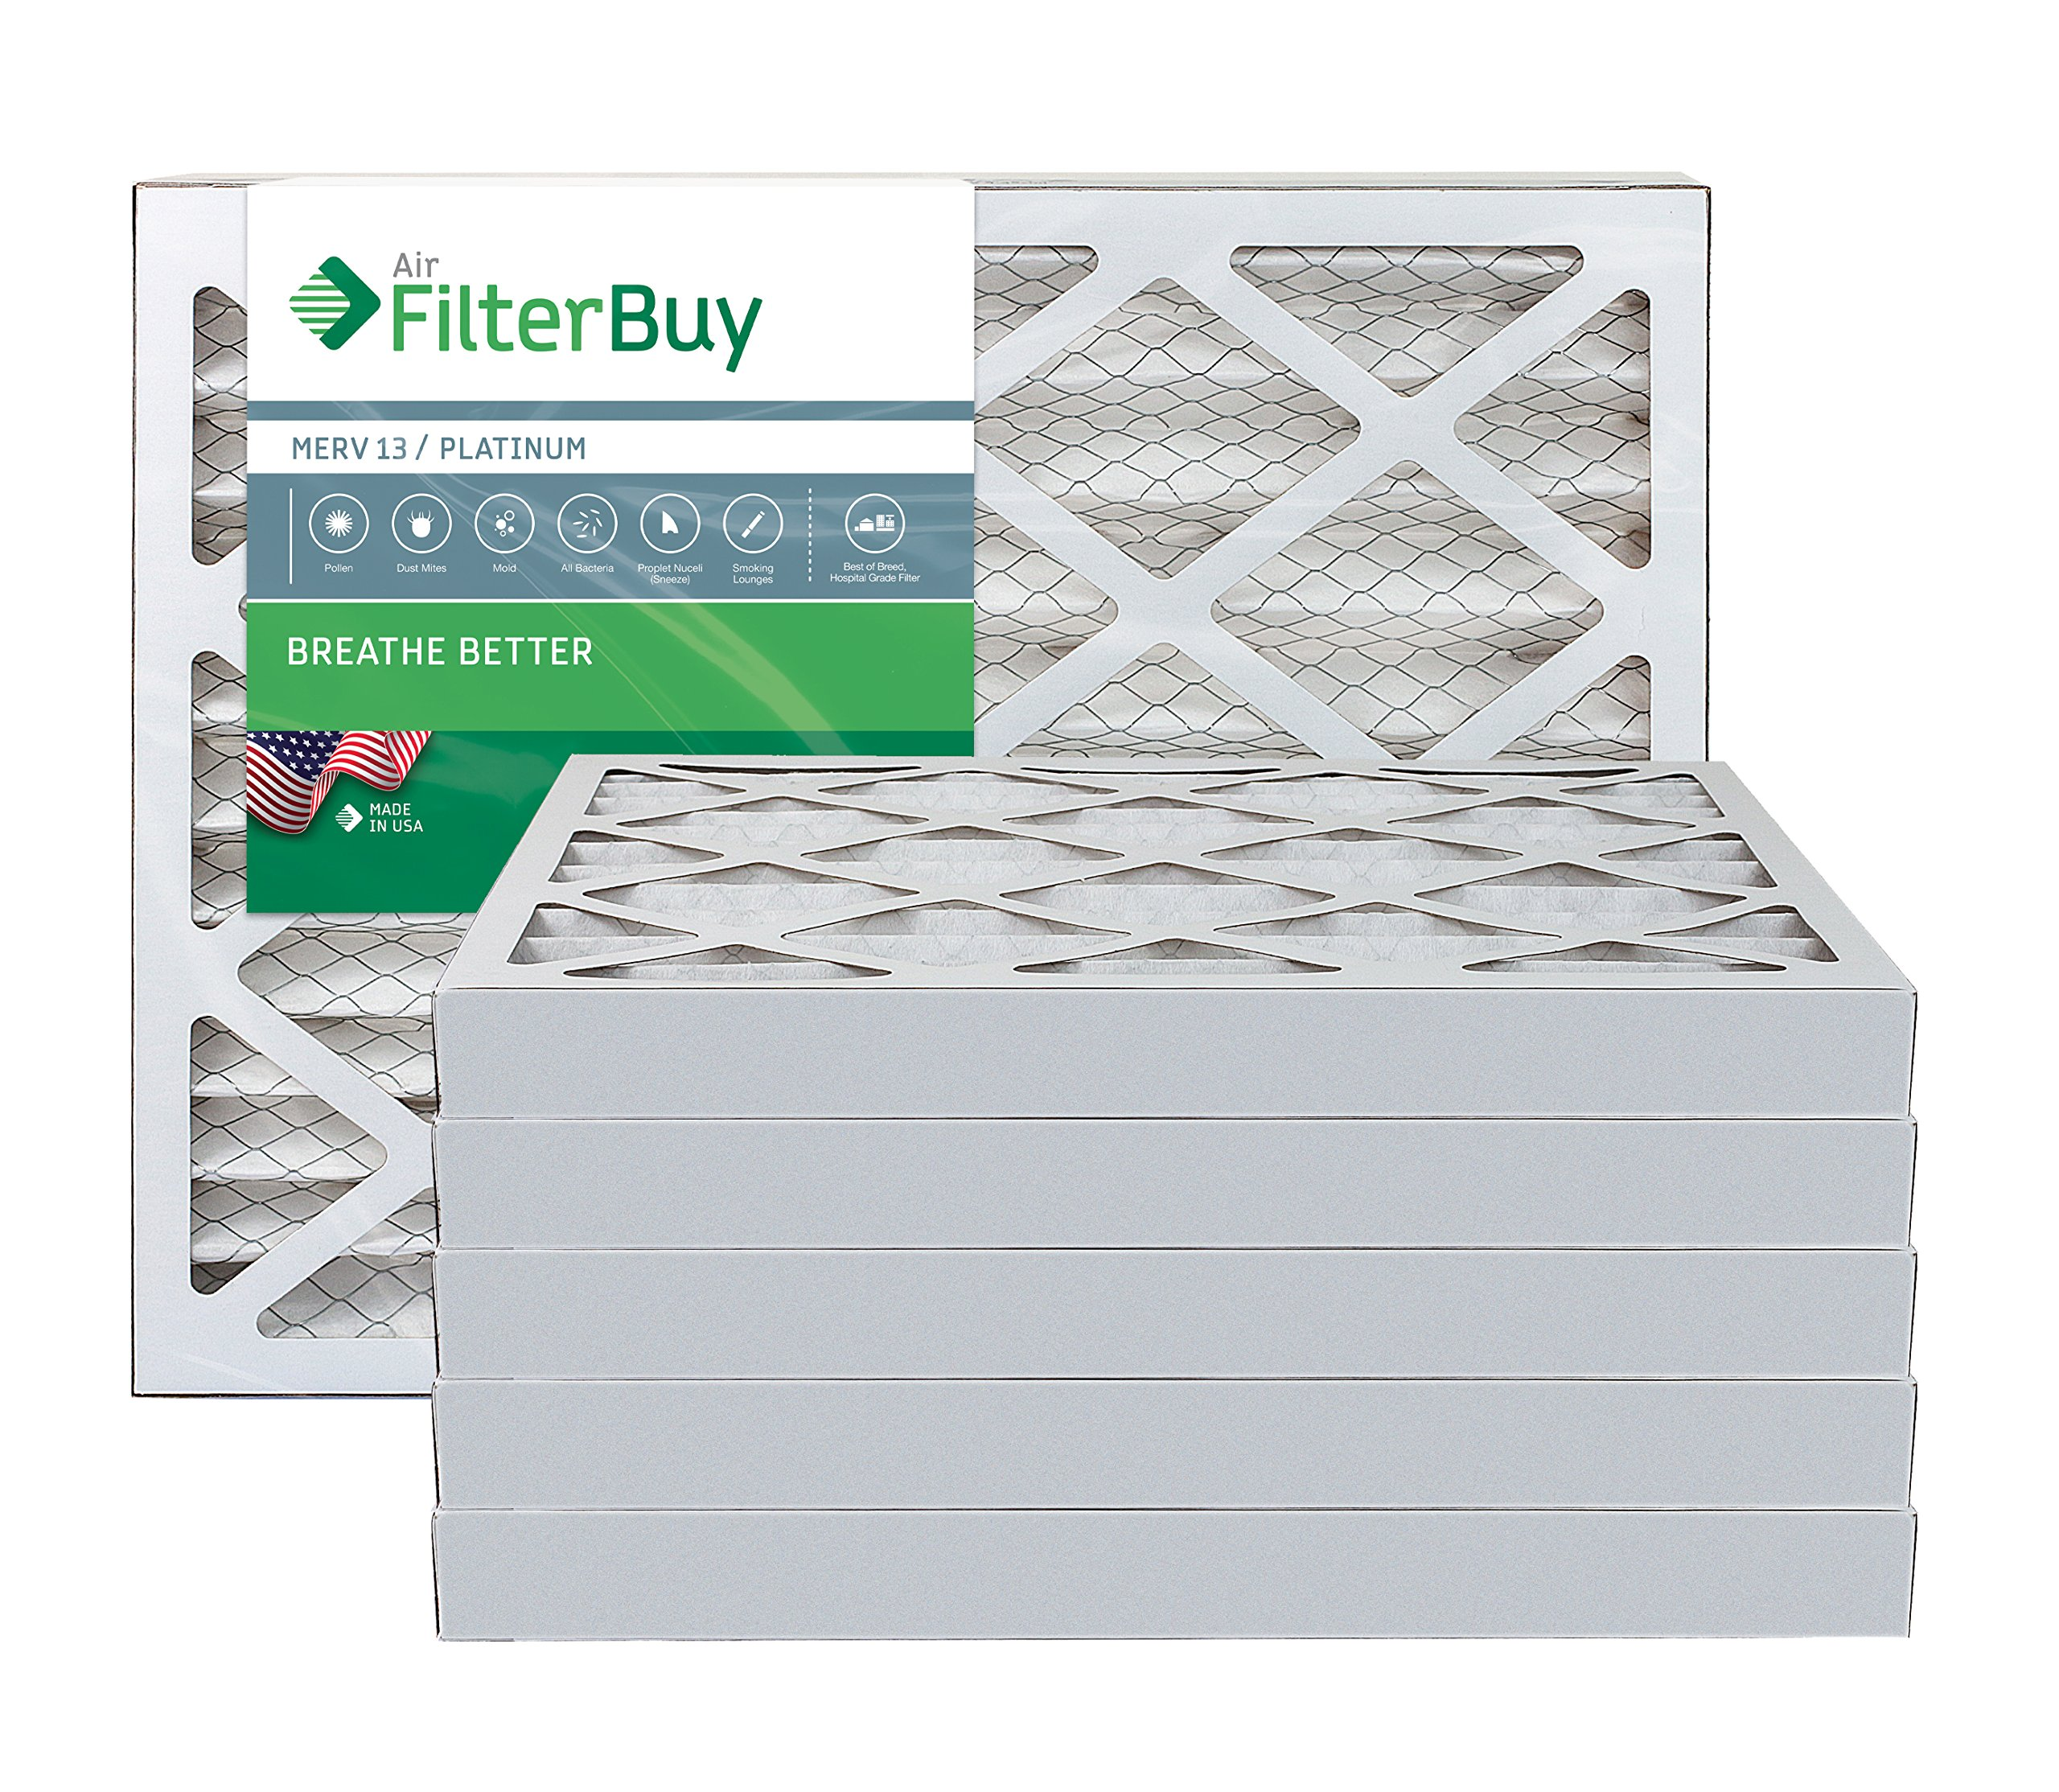 AFB Platinum MERV 13 28x30x2 Pleated AC Furnace Air Filter. Pack of 6 Filters. 100% produced in the USA.